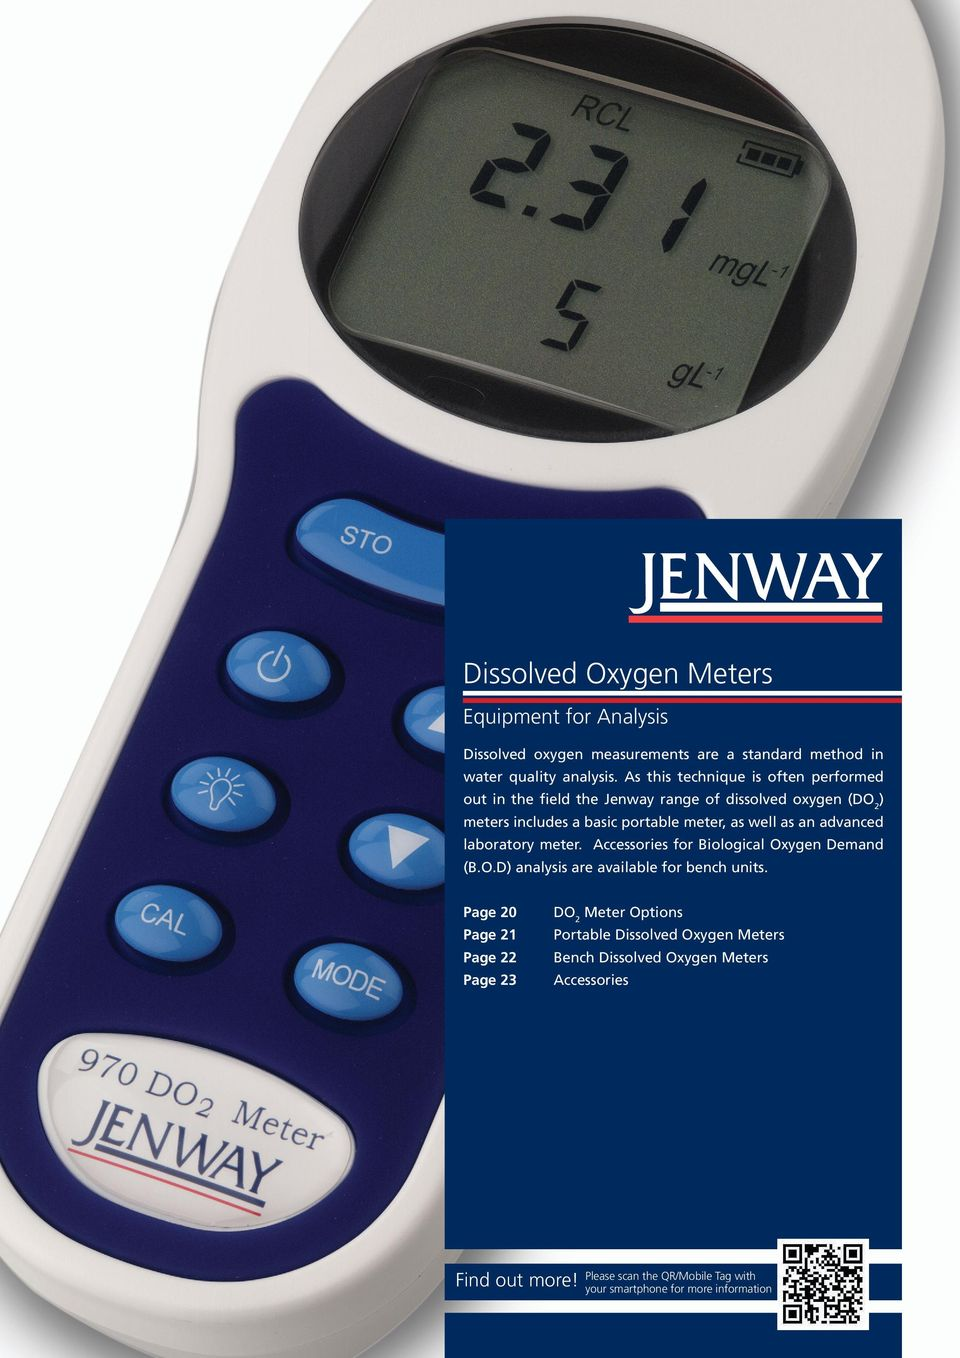 advanced laboratory meter. Accessories for Biological Oxygen Demand (B.O.D) analysis are available for bench units.